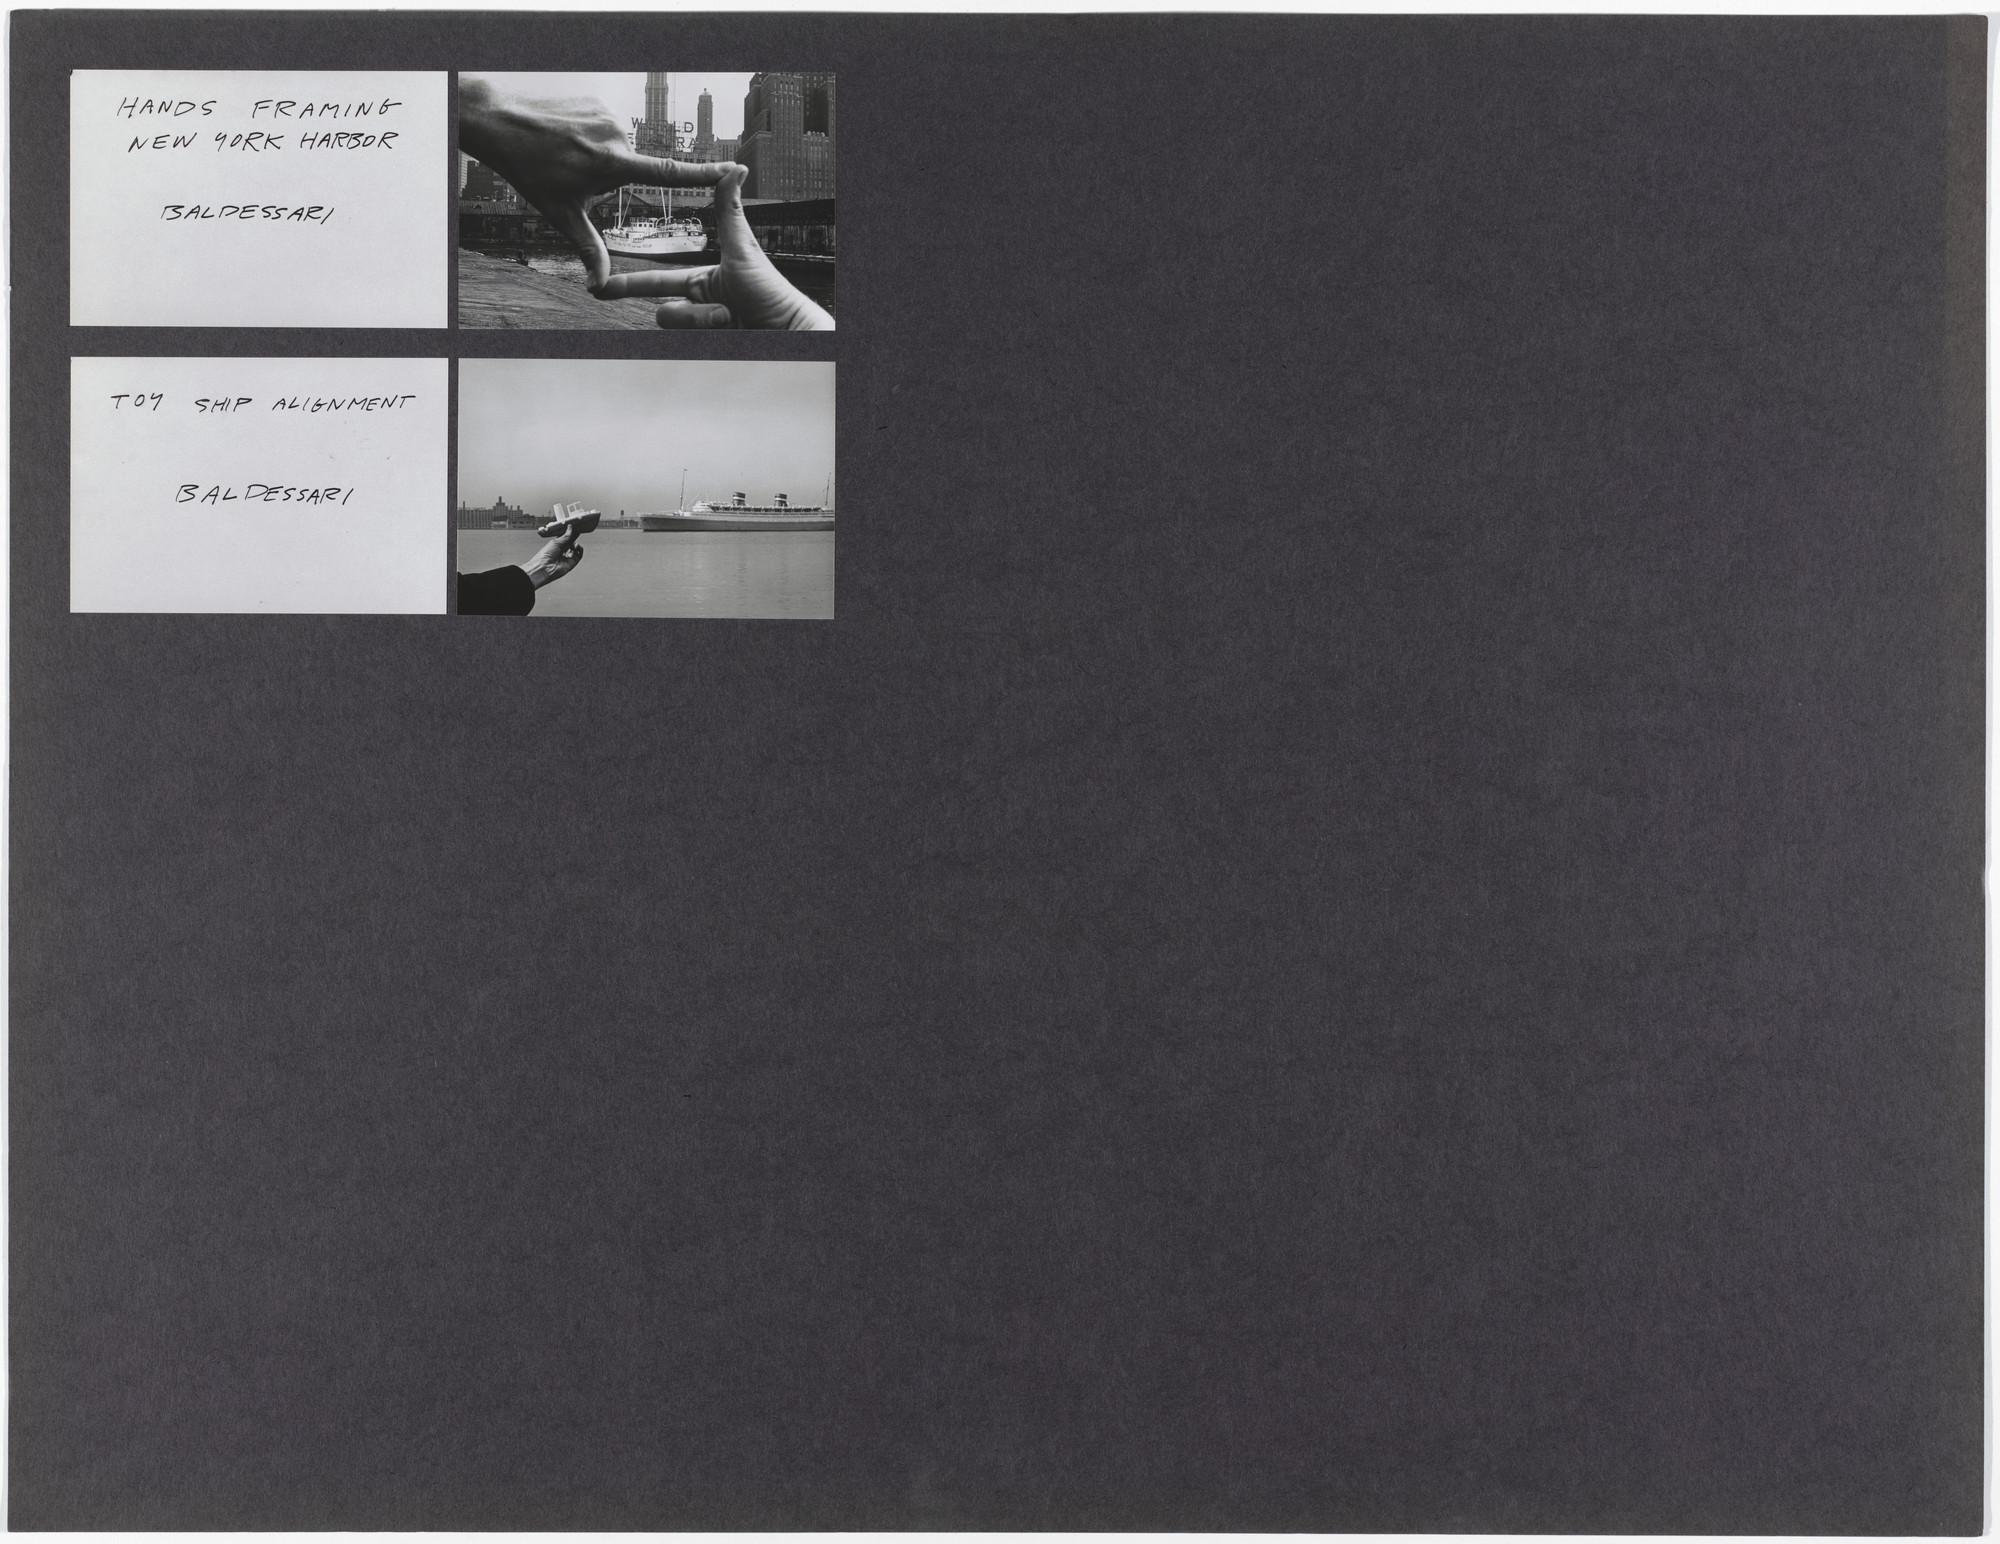 John Baldessari, Harry Shunk, János Kender. Hands Framing New York Harbor and Toy Ship Alignment. 1971